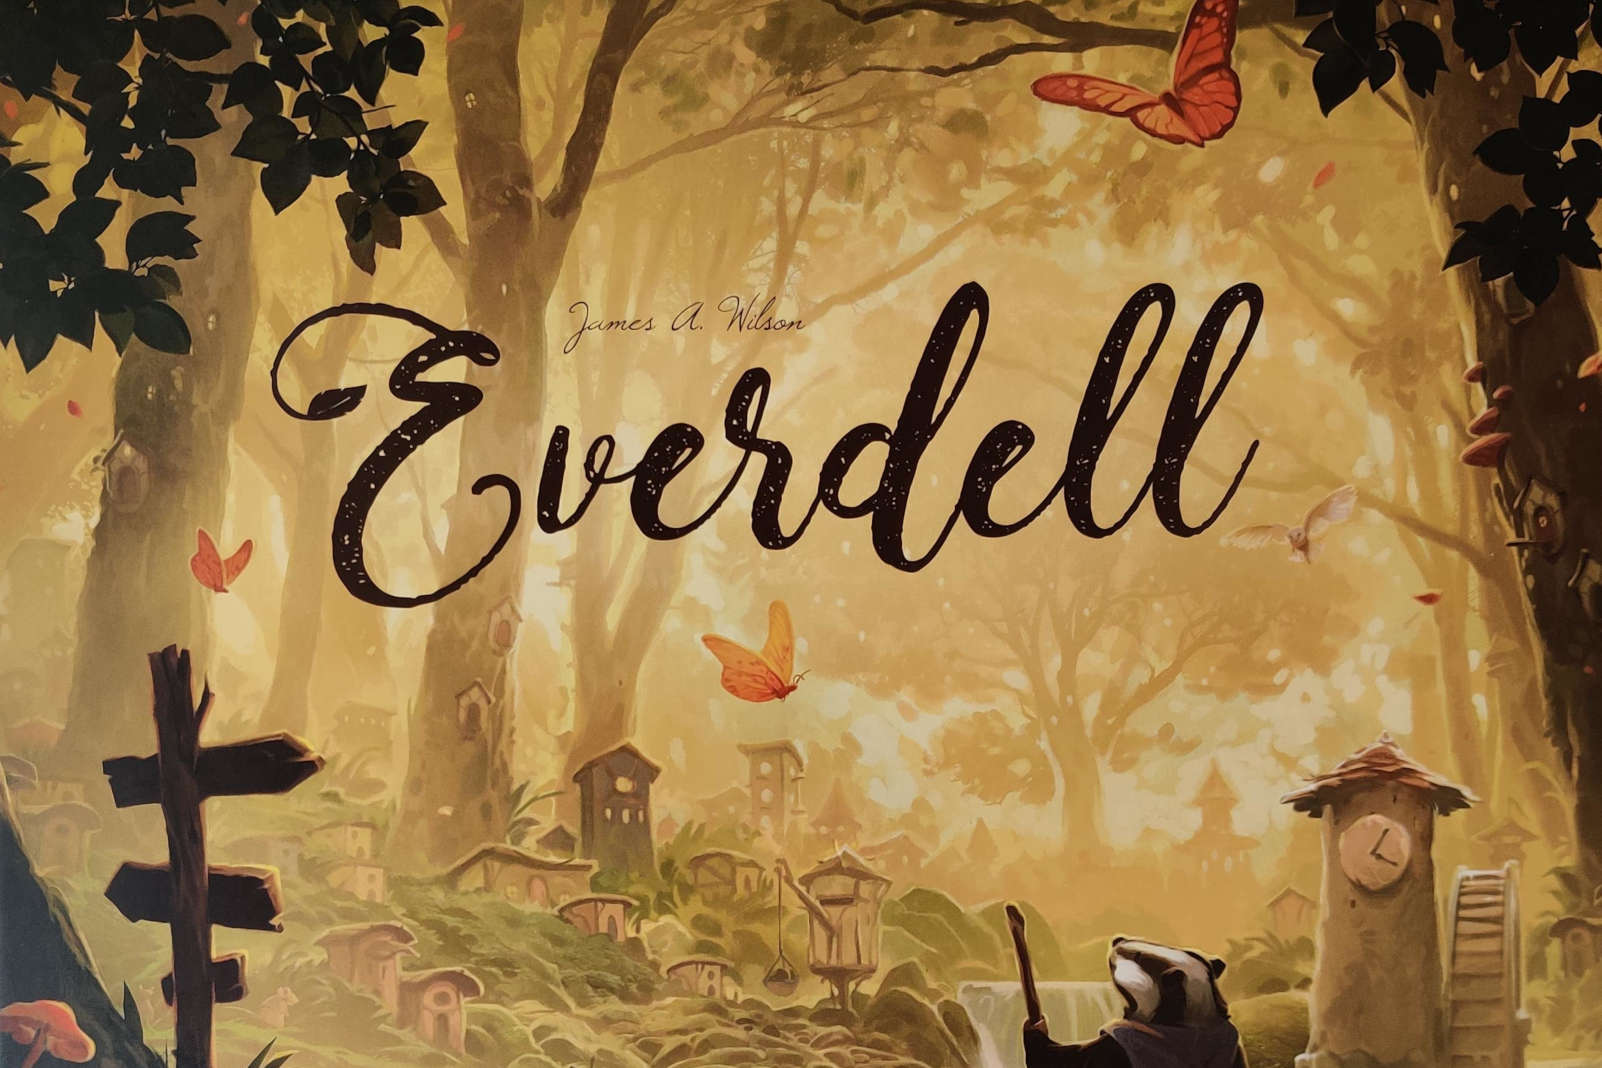 everdell cover box